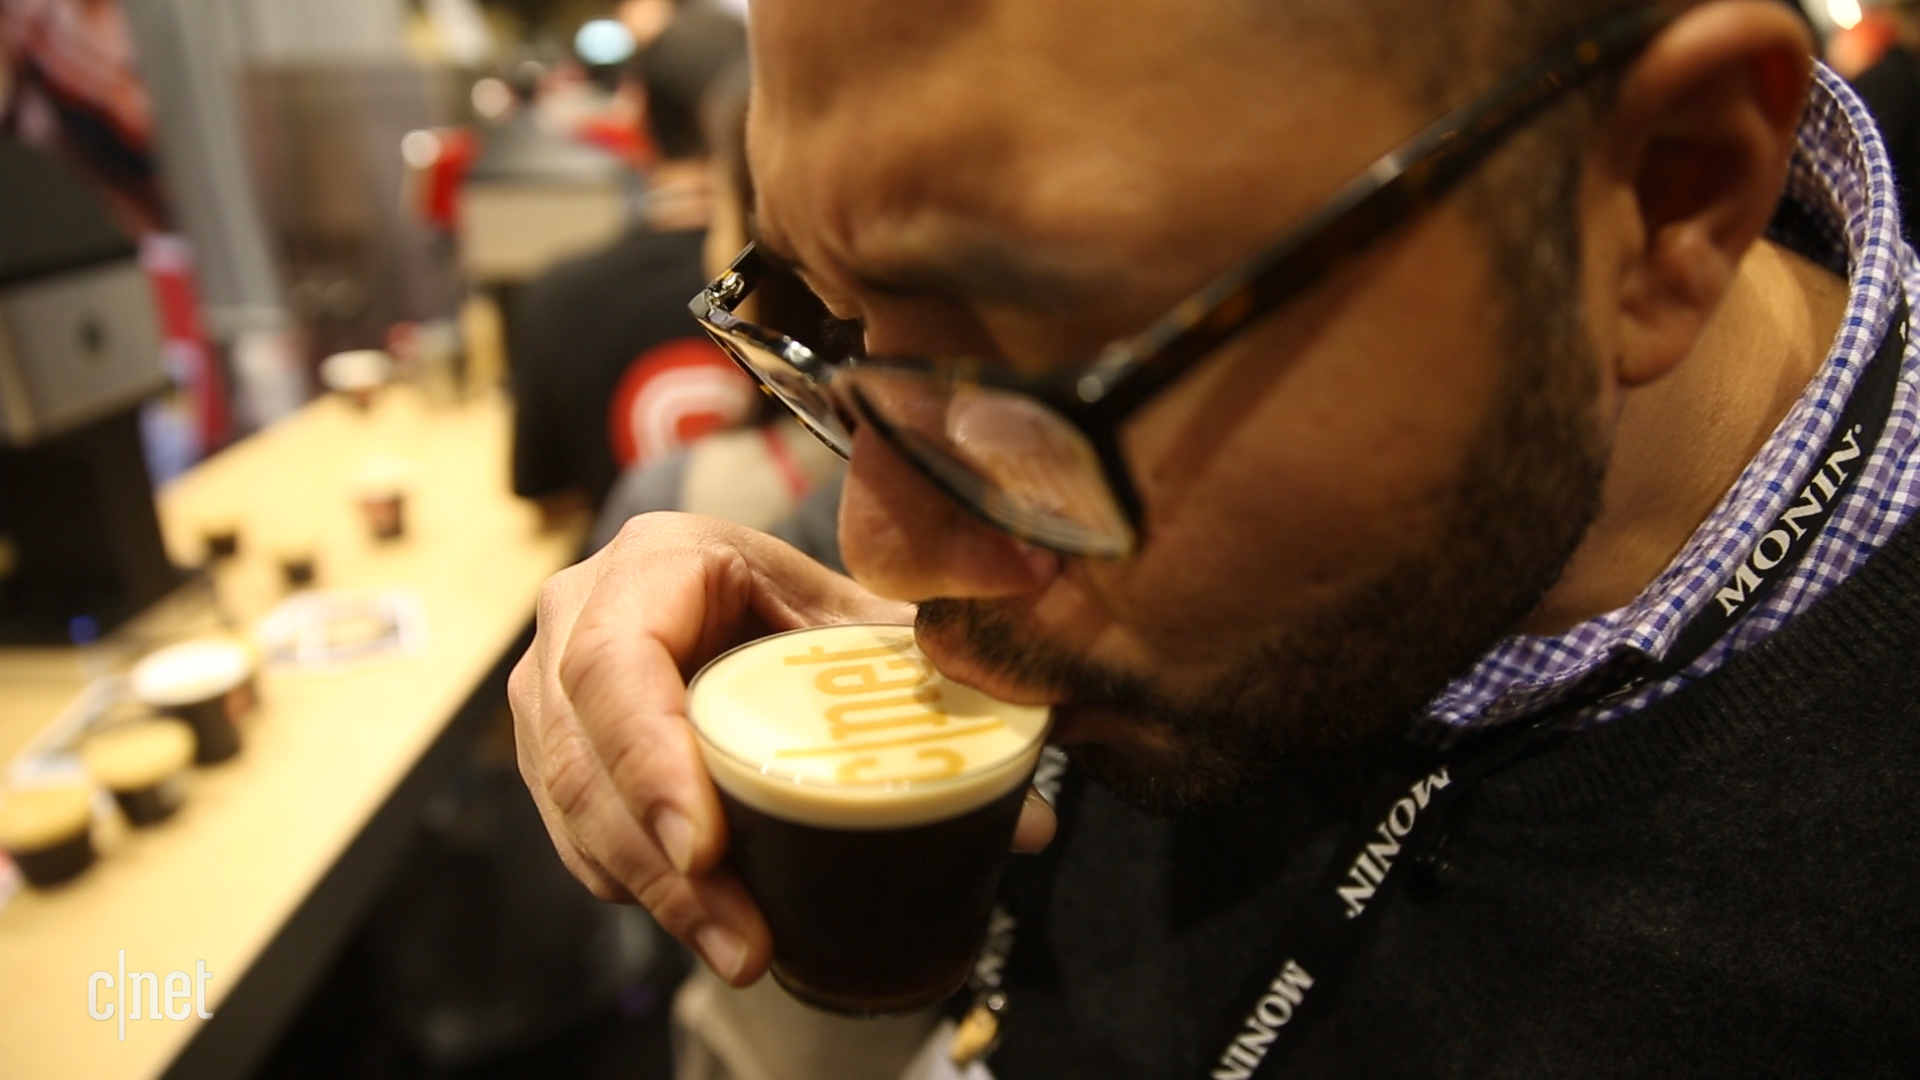 Video: Look at this crazy coffee tech from Seattle